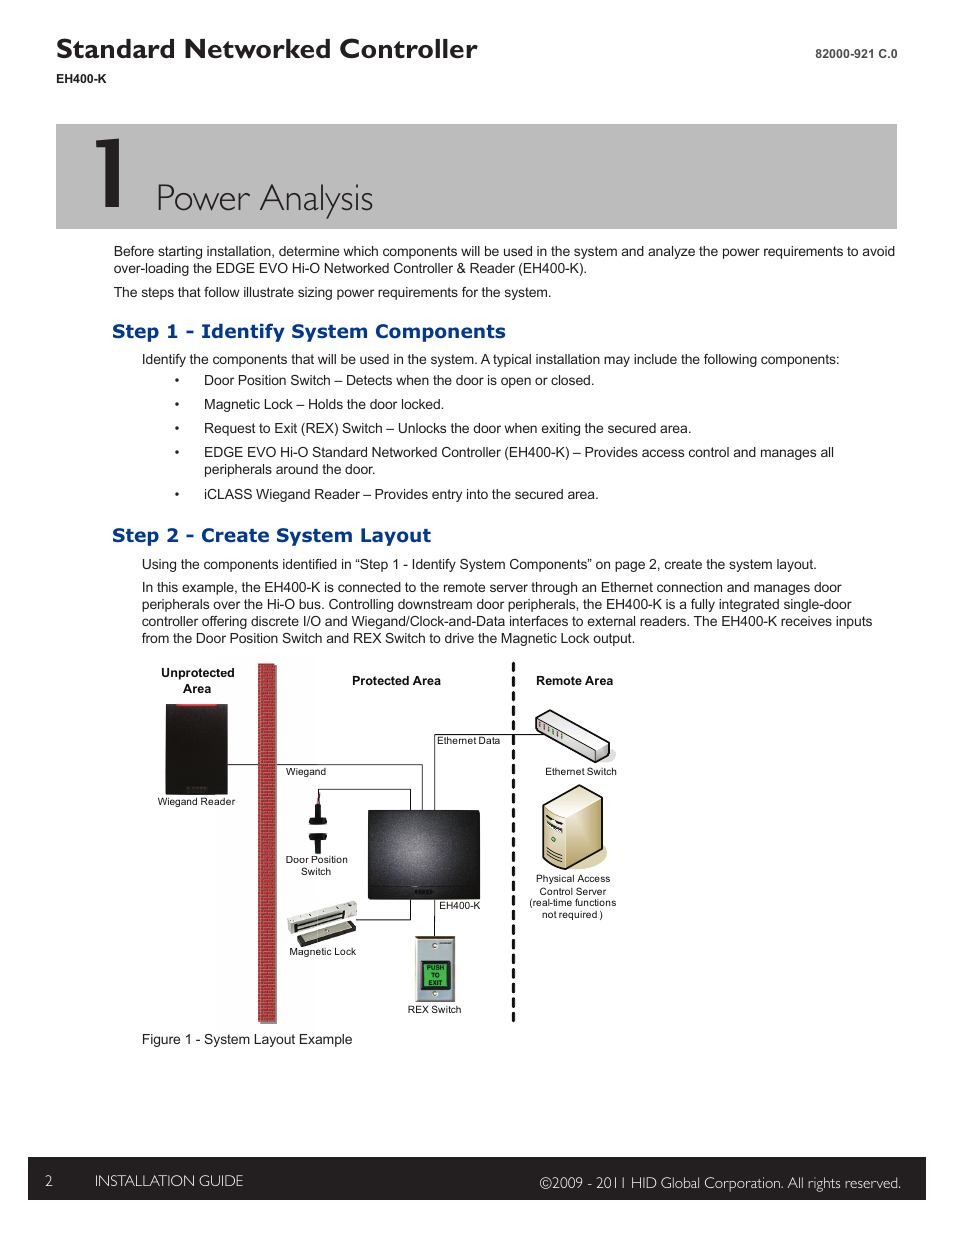 1 - power analysis, Step 1 - identify system components, Step 2